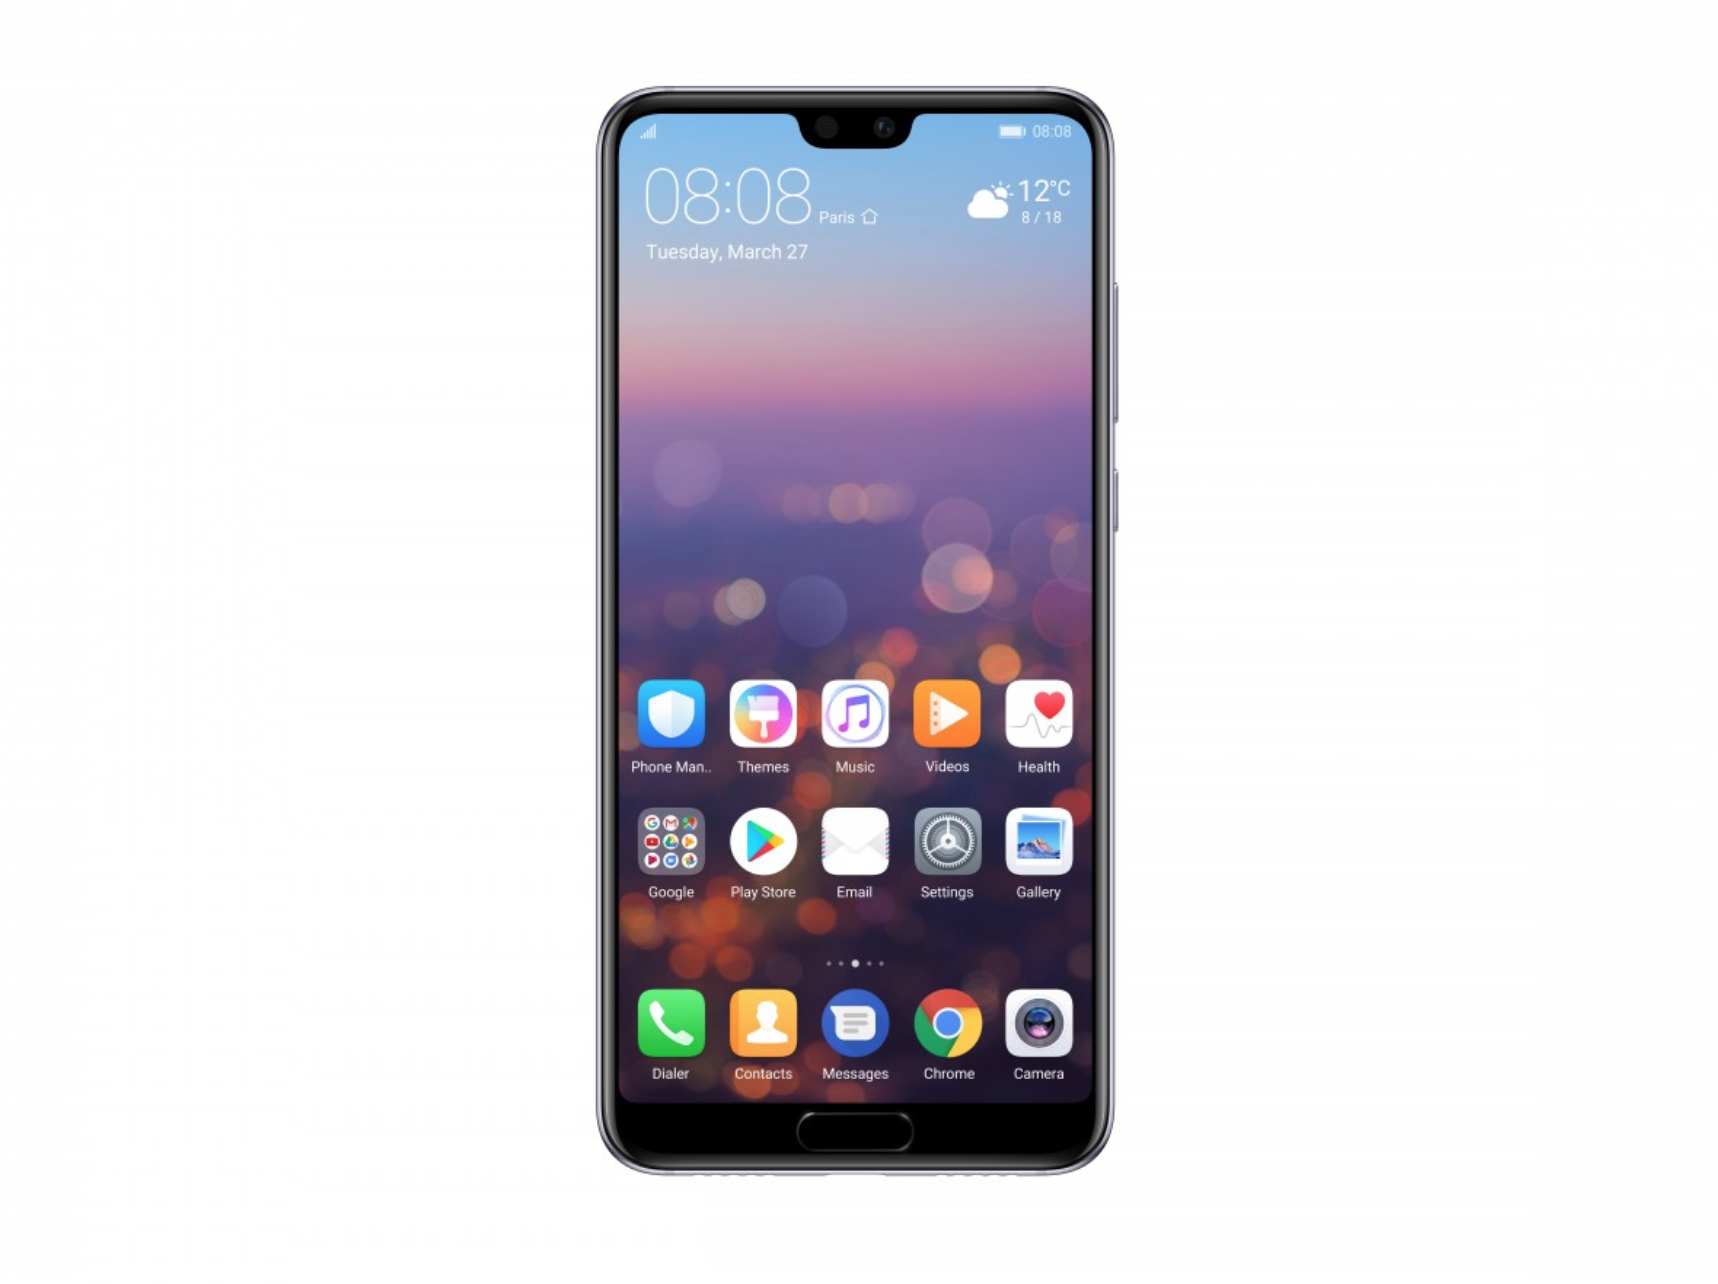 Screen Shot 2018 03 27 at 10.31.23 PM - Huawei unveils the Huawei P20 Pro rocking a notch and a 40MP Triple camera setup along with the P20